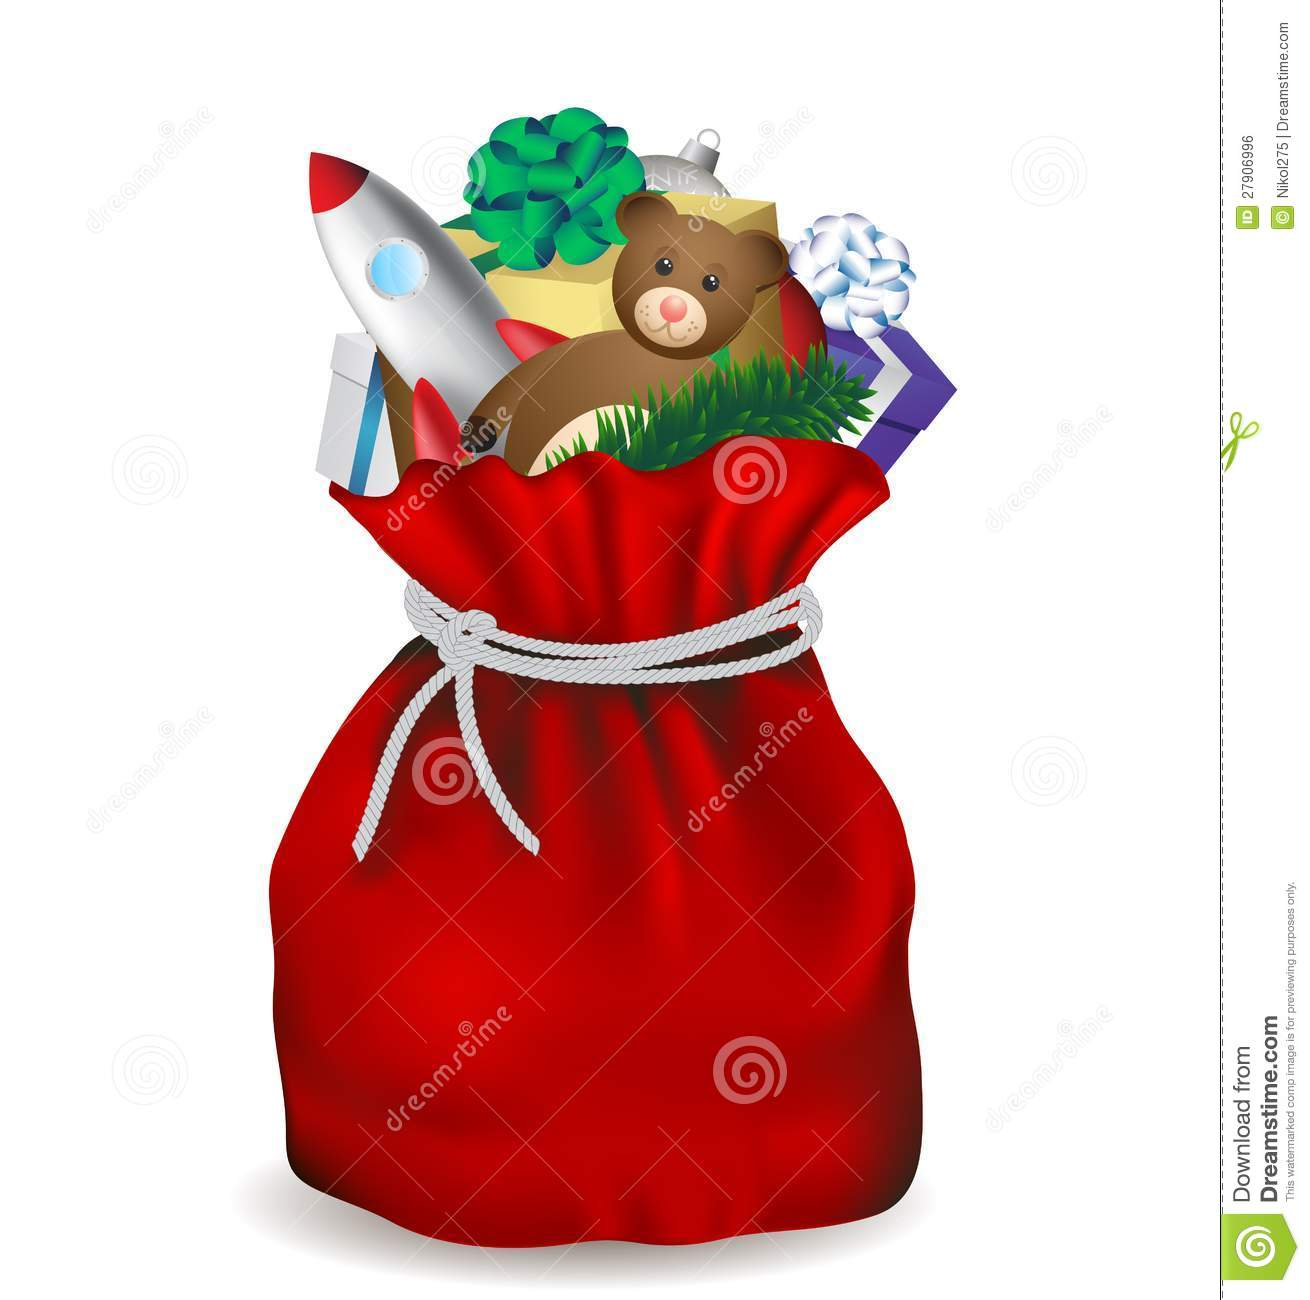 Santa claus bag royalty free stock image